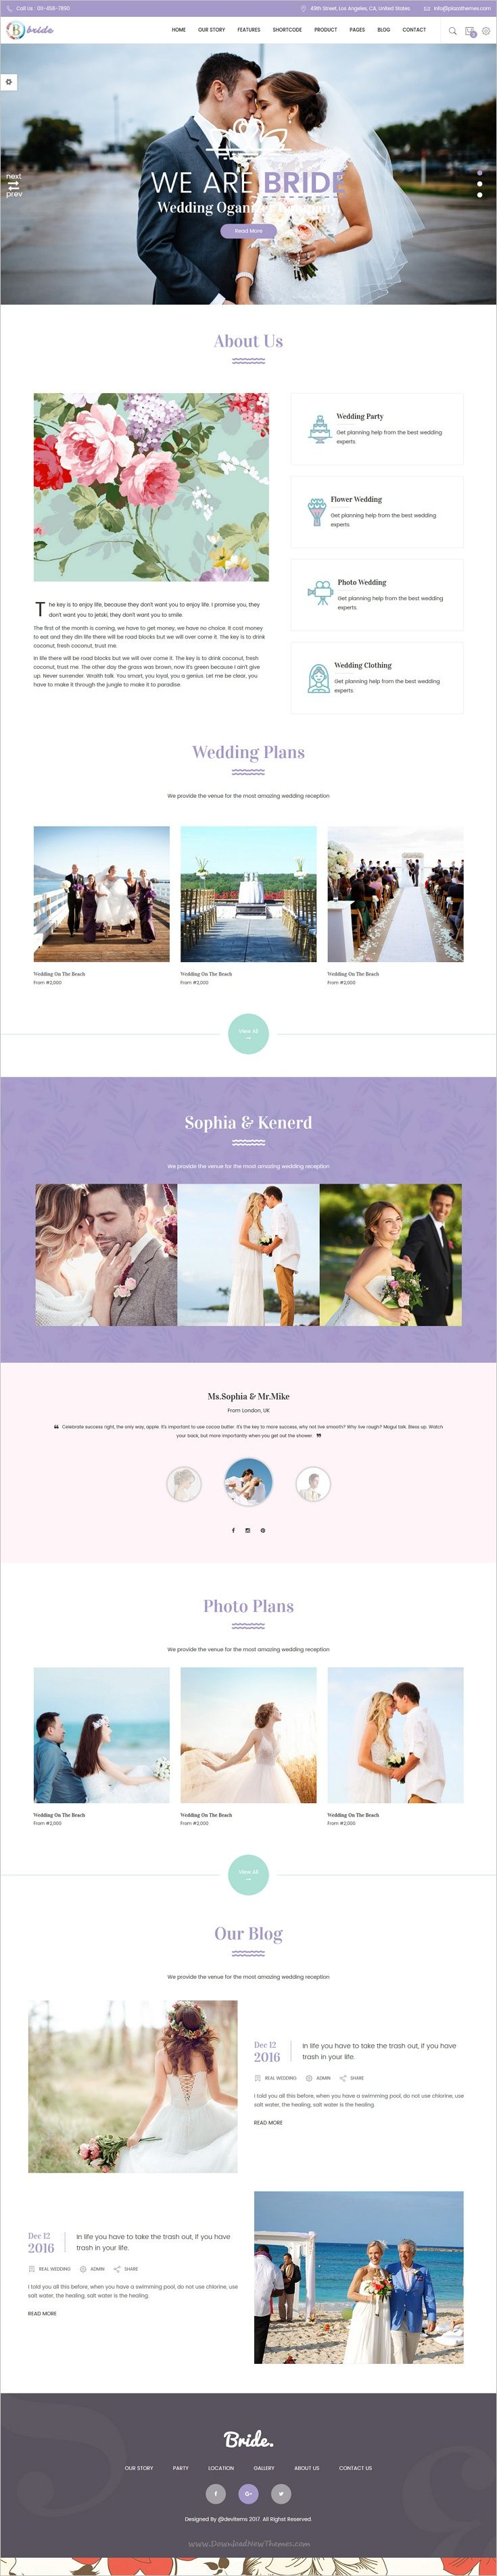 wedding invitation template themeforest%0A example of cv and cover letter